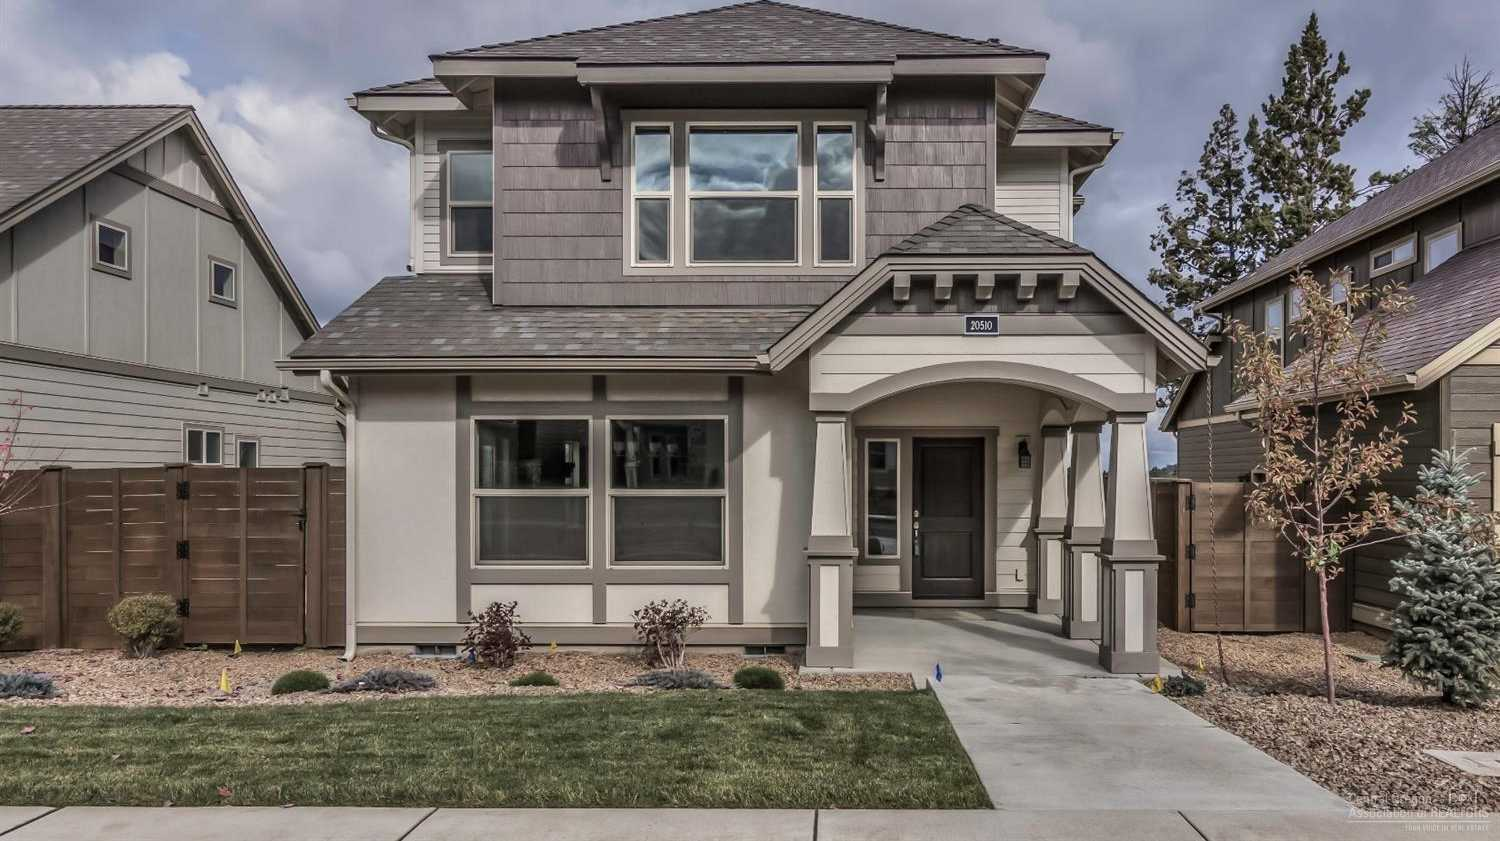 $419,990 - 3Br/3Ba -  for Sale in Bend